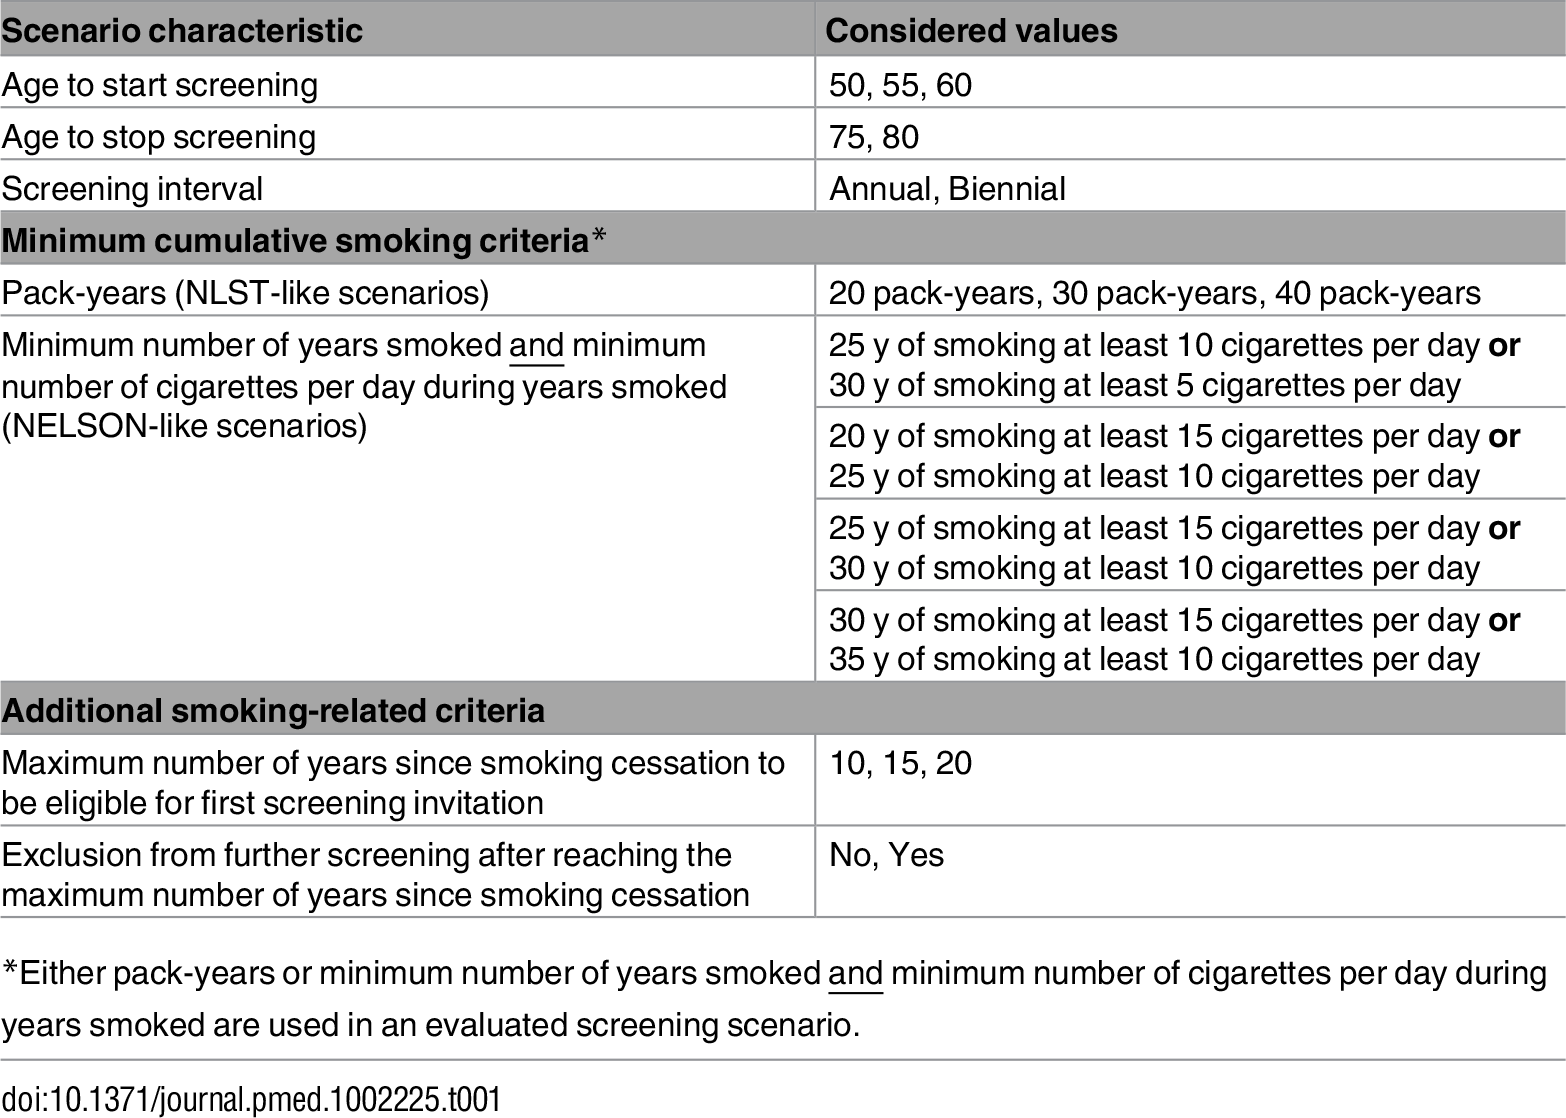 Characteristics of the lung cancer screening scenarios evaluated by the MISCAN-Lung model.